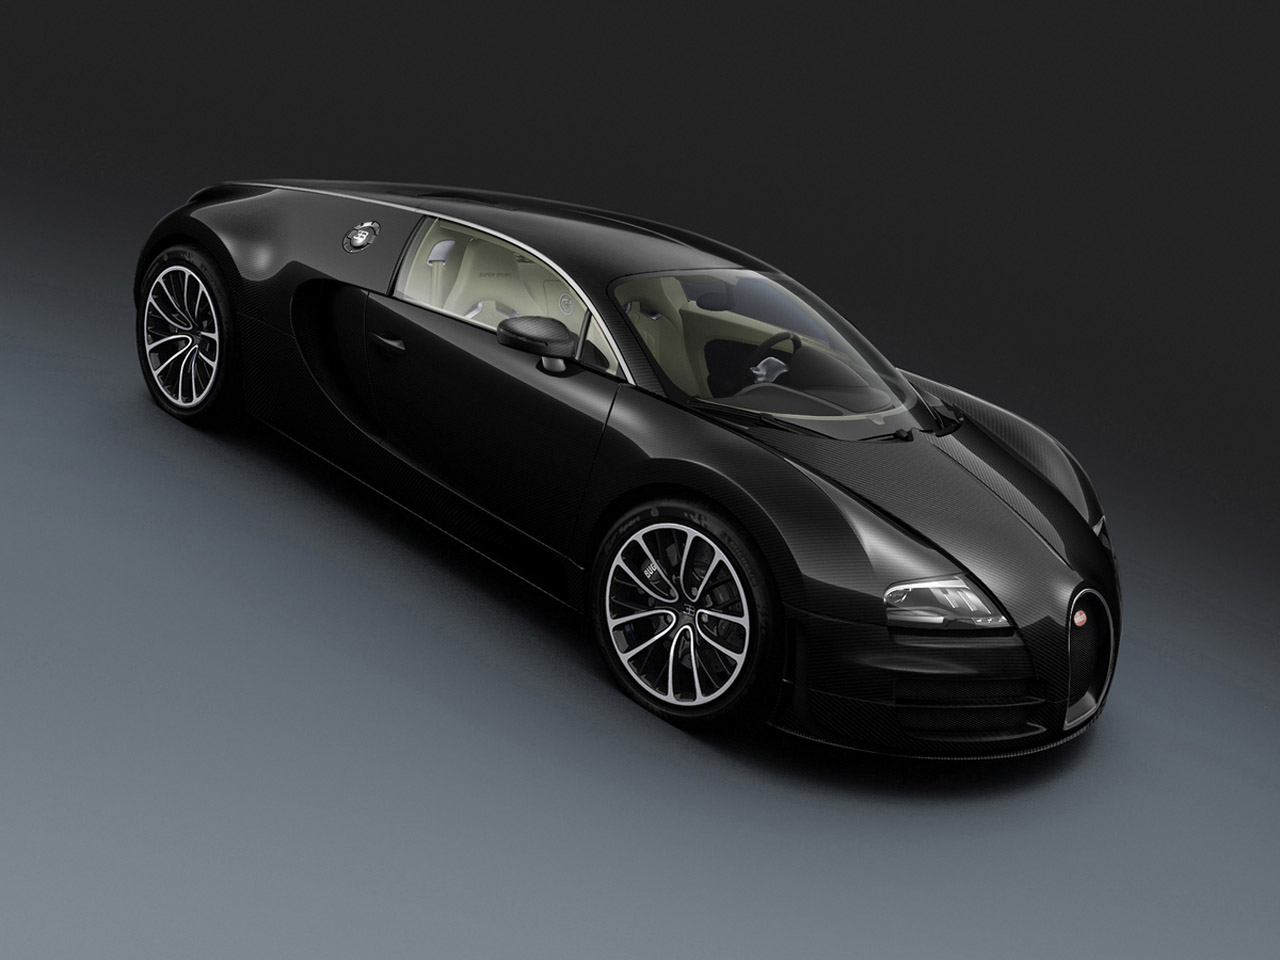 2010 bugatti veyron super sport bugatti veyron bugatti grand sport buga. Black Bedroom Furniture Sets. Home Design Ideas